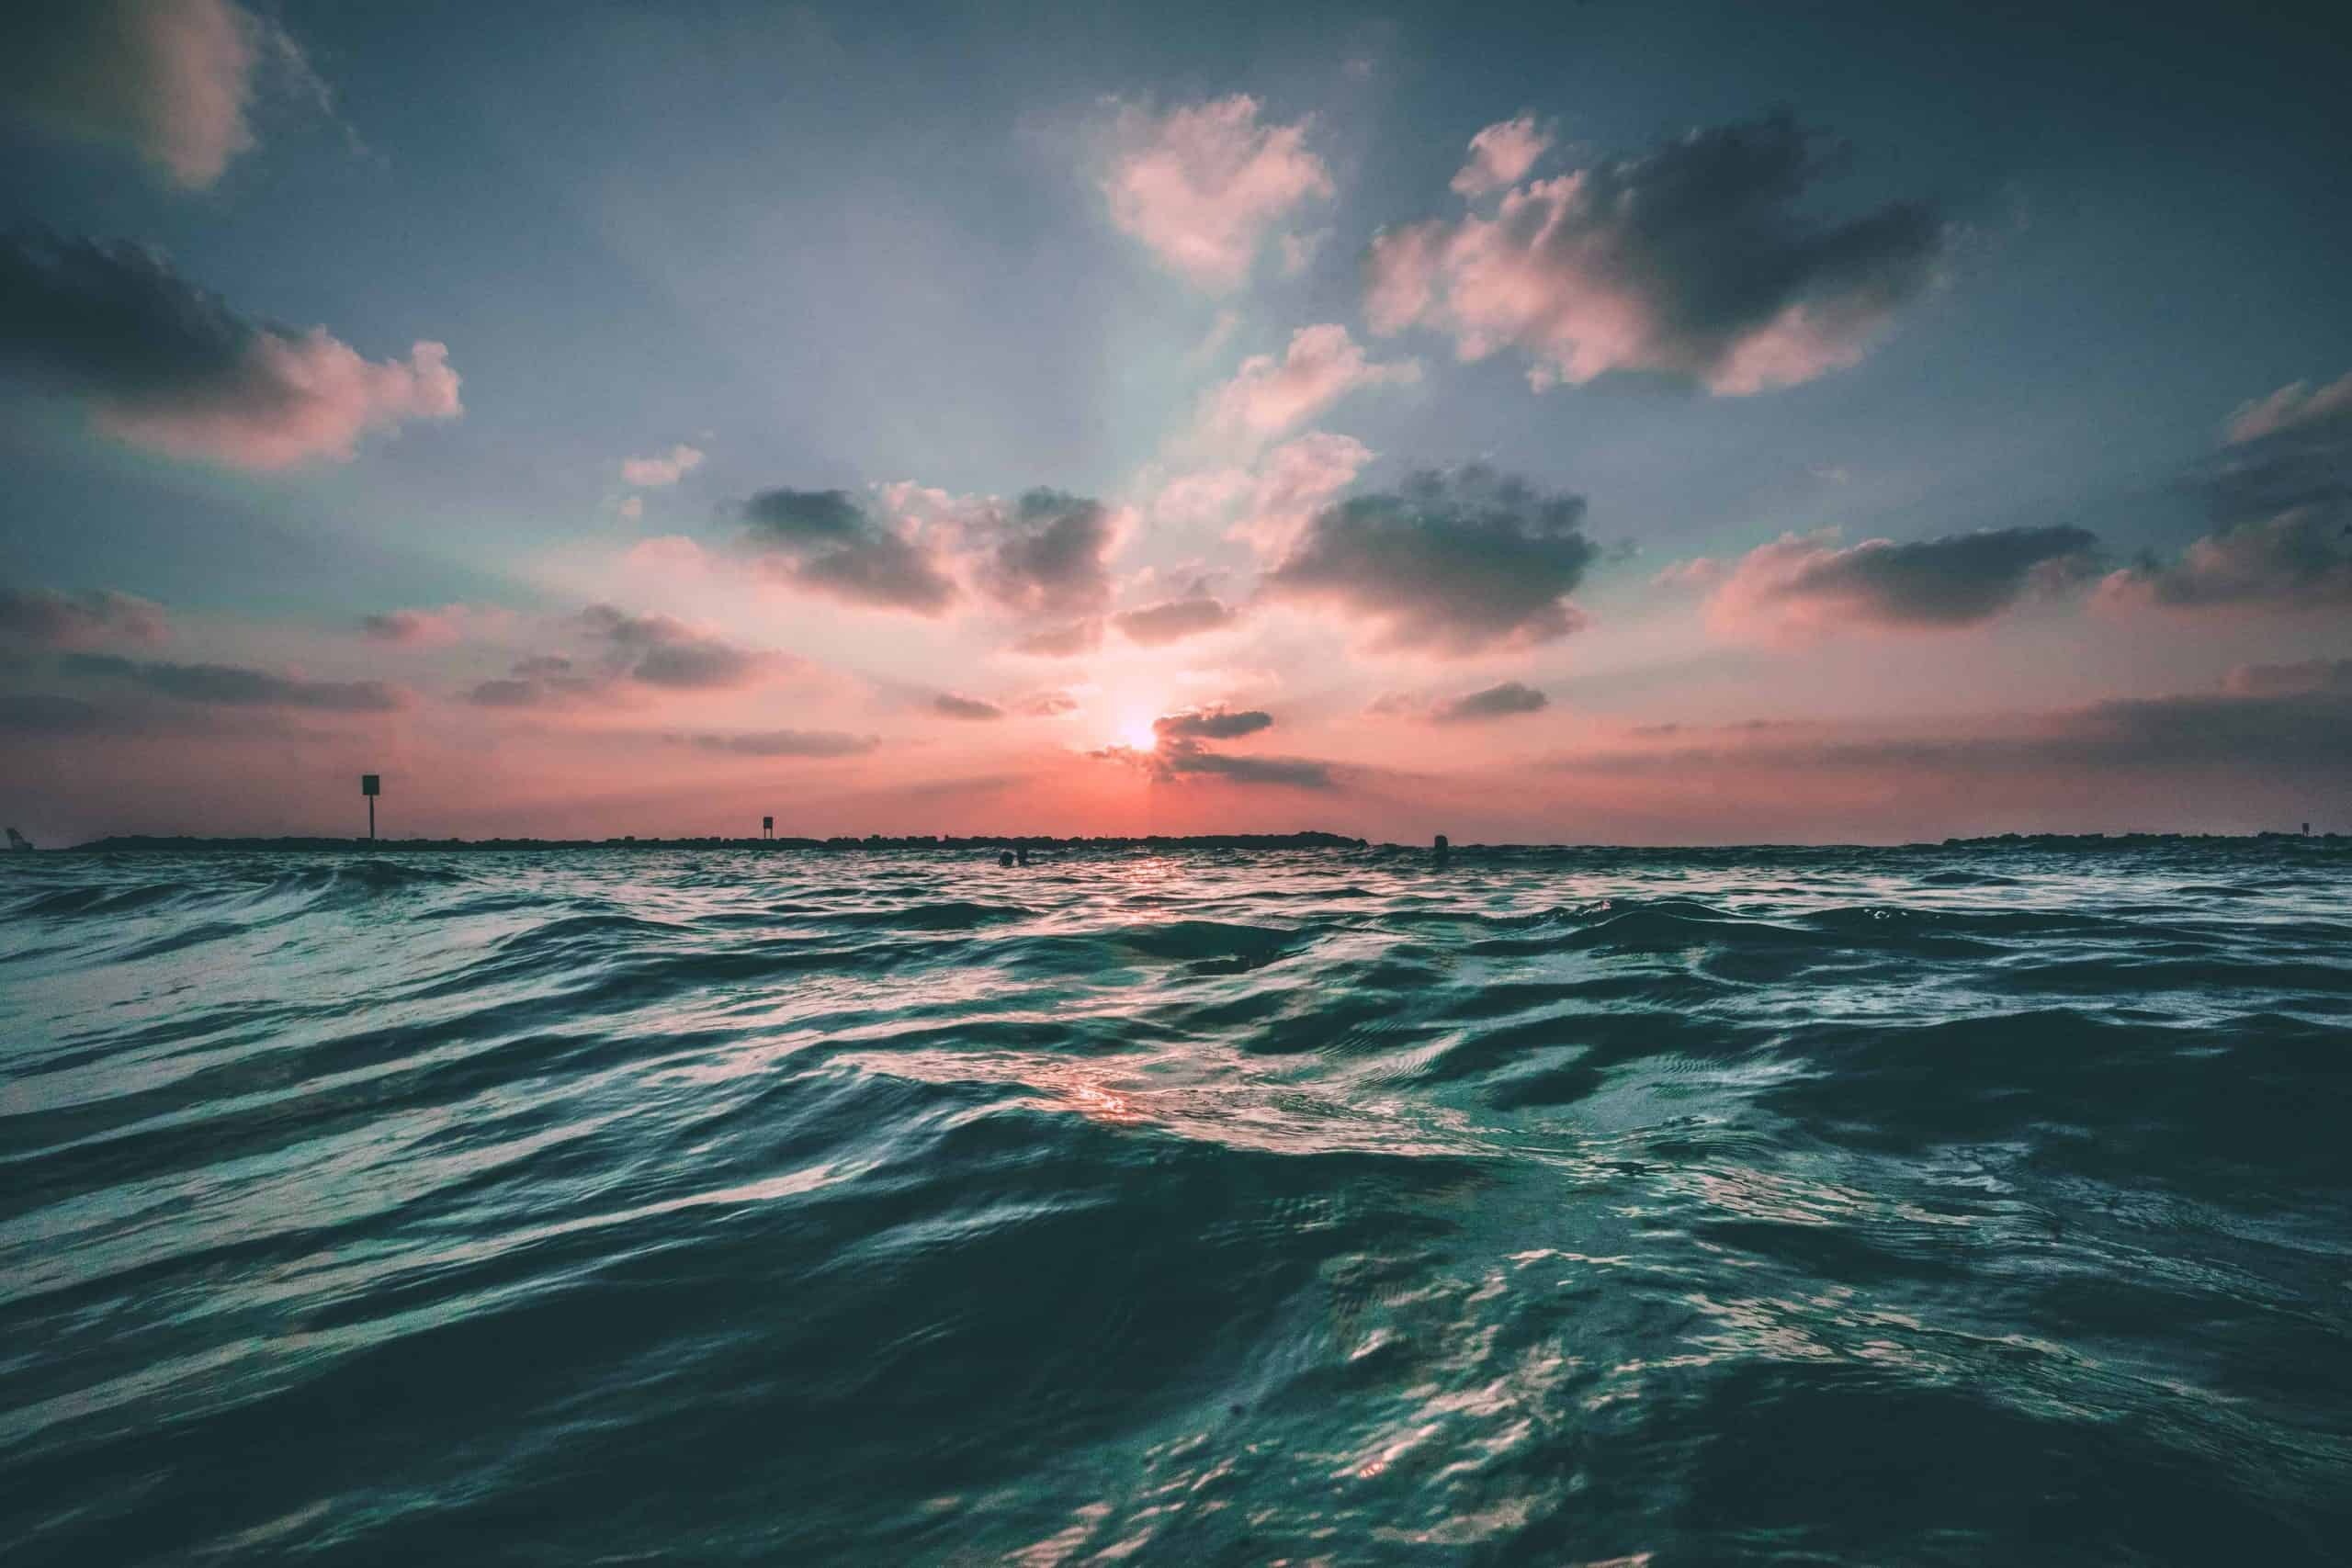 Ocean with a cloudy sunset.